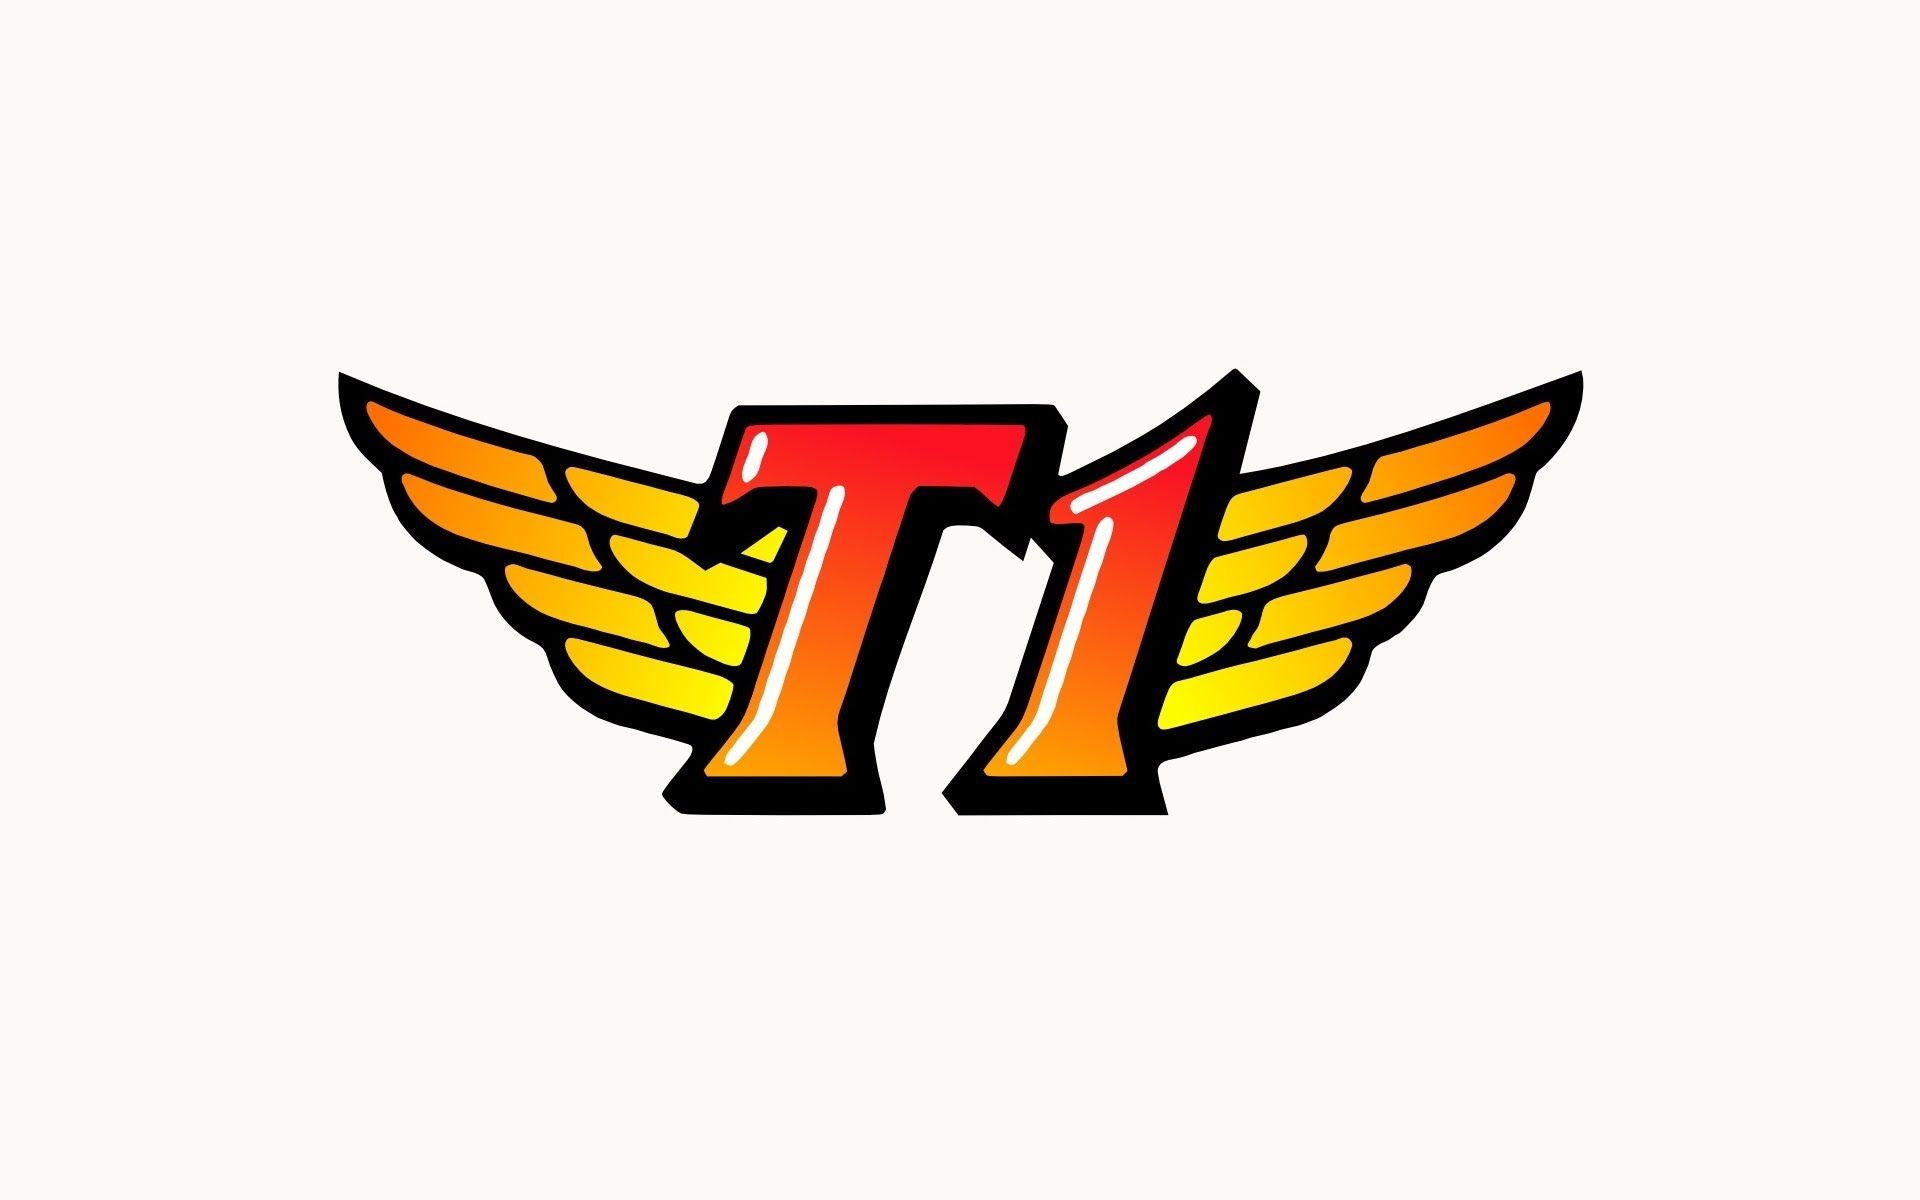 SK Telecom T1 has just changed their logo. : leagueoflegends.